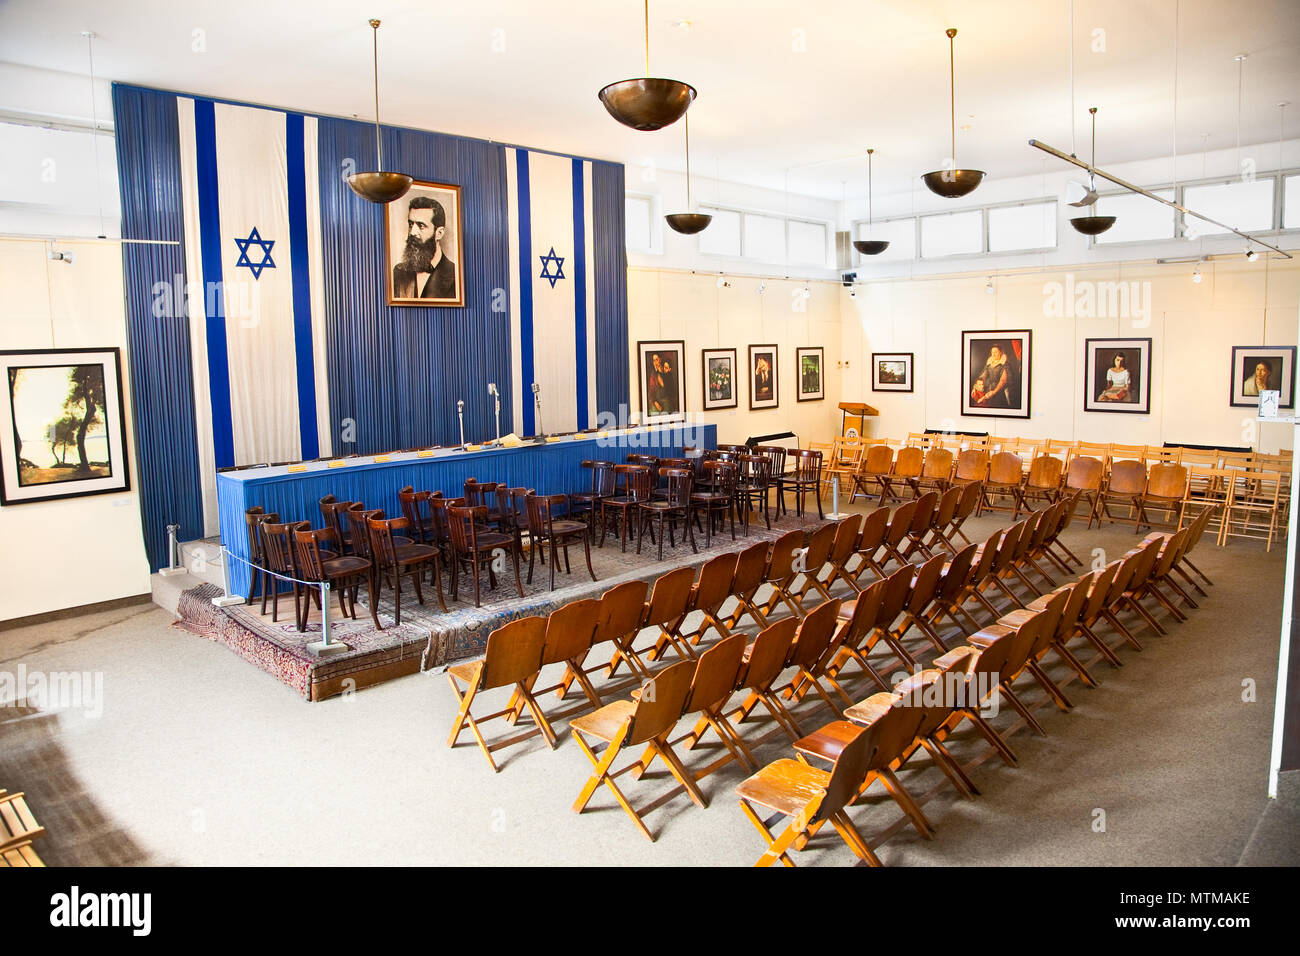 Independence Hall where is The Israeli Declaration of Independence was made on 14 May 1948, was the Tel Aviv Museum. - Stock Image